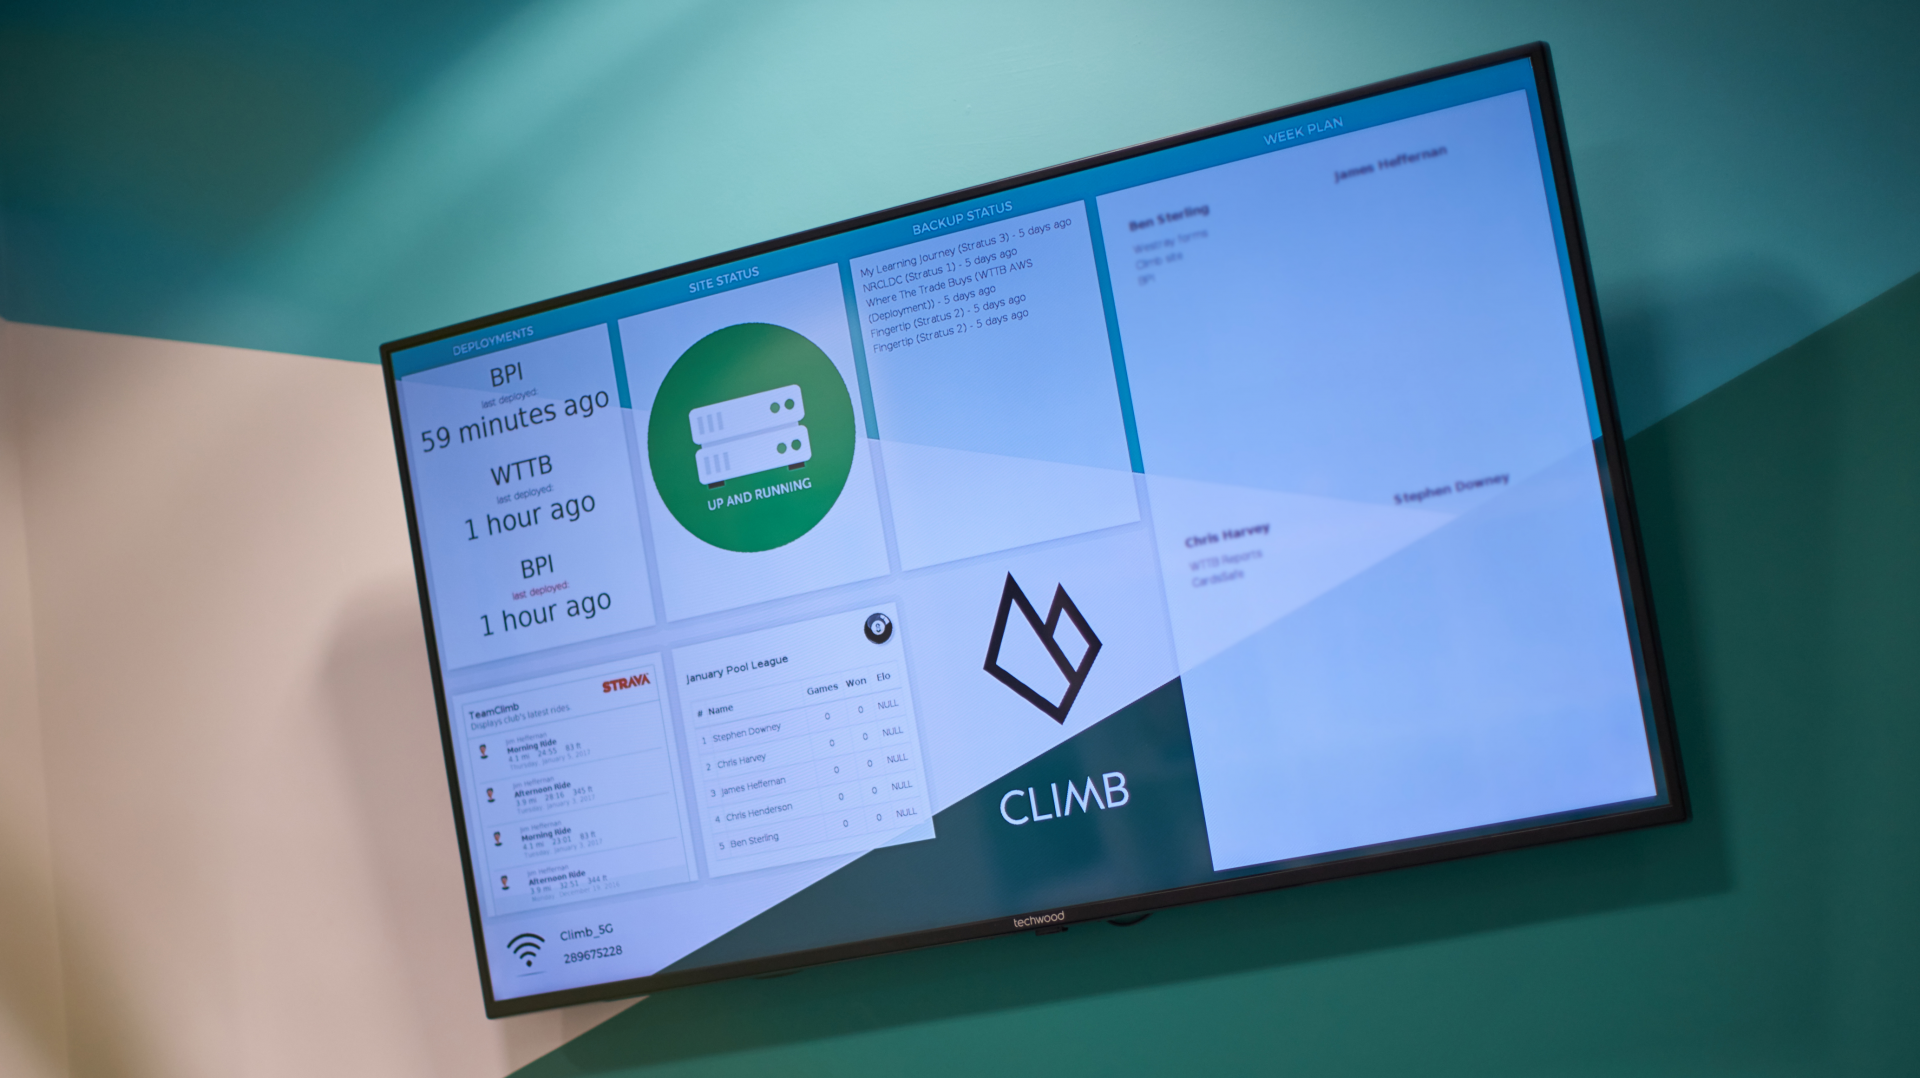 Climb's dashboard TV